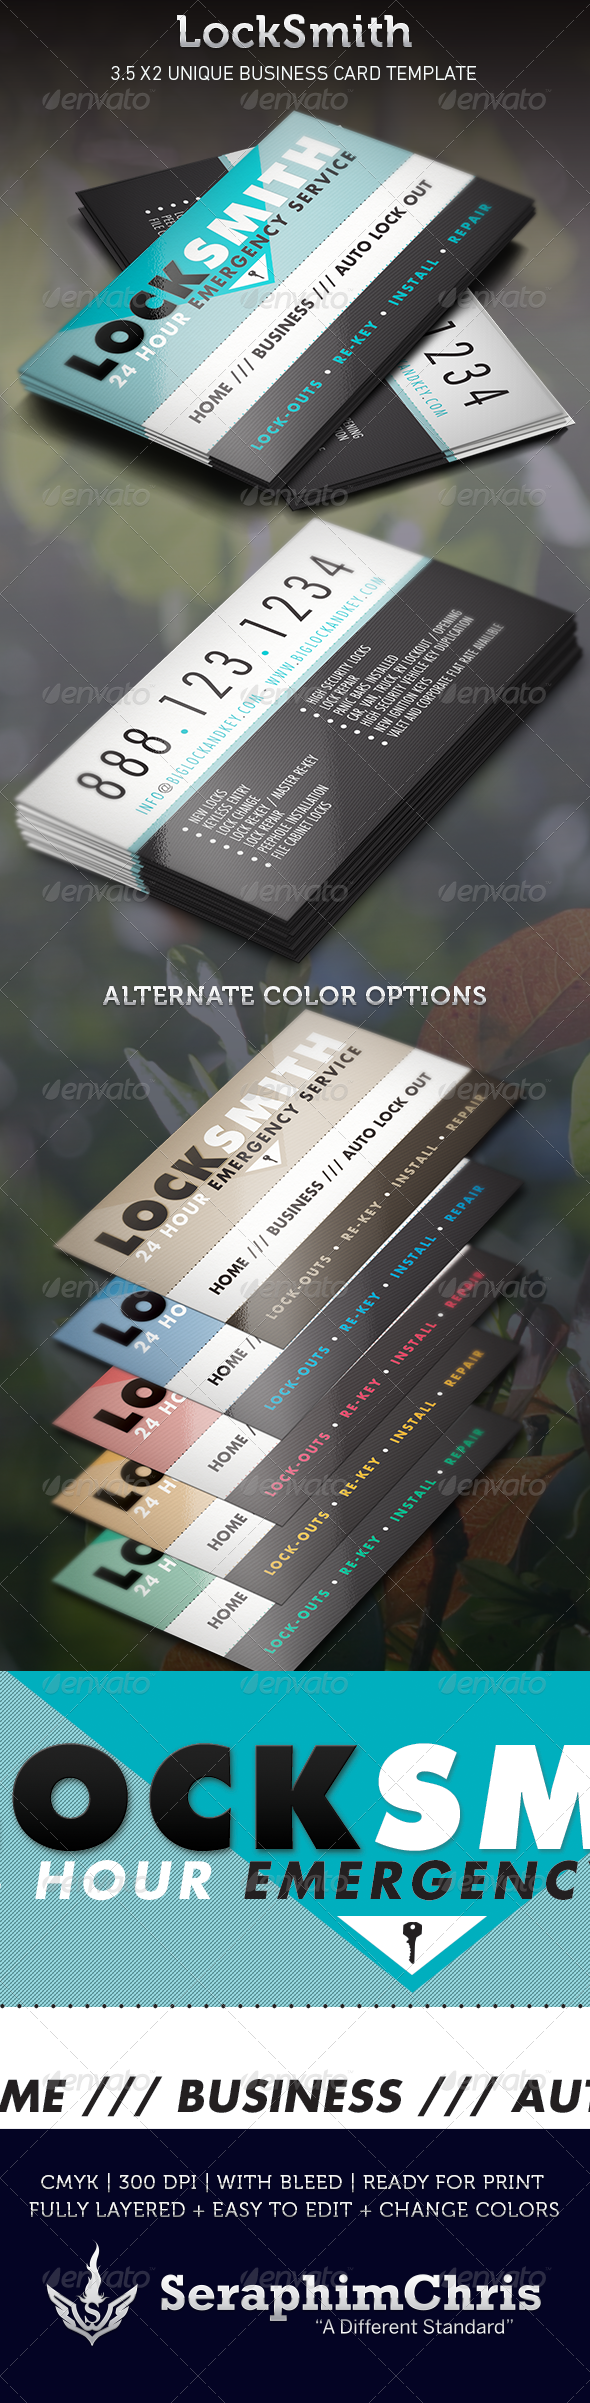 Locksmith Graphics Designs Templates From Graphicriver